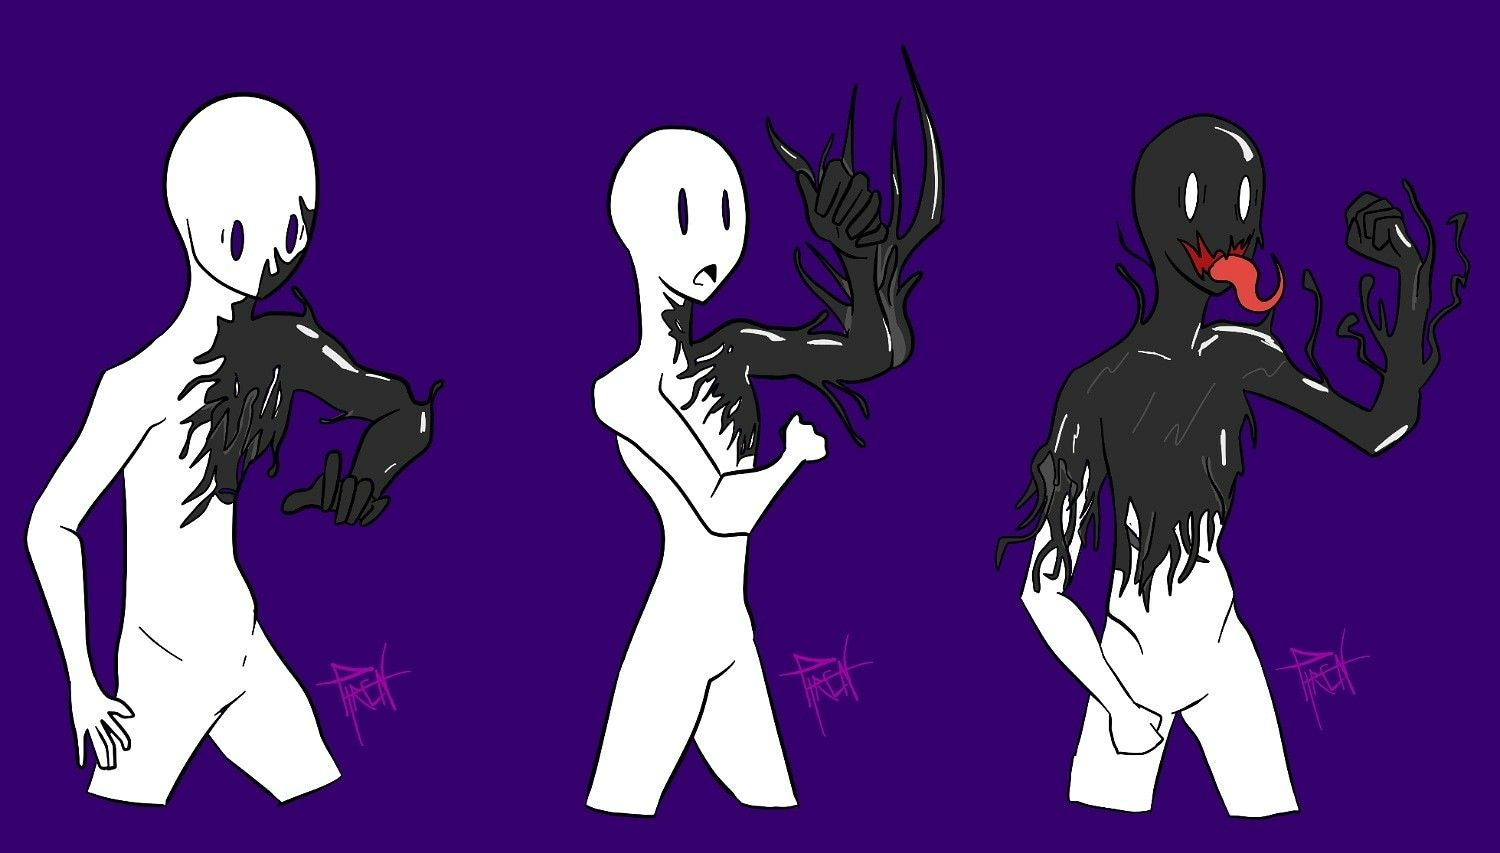 Ych Venom Symbiote Drawing Base Spiderman Art Art Reference Poses